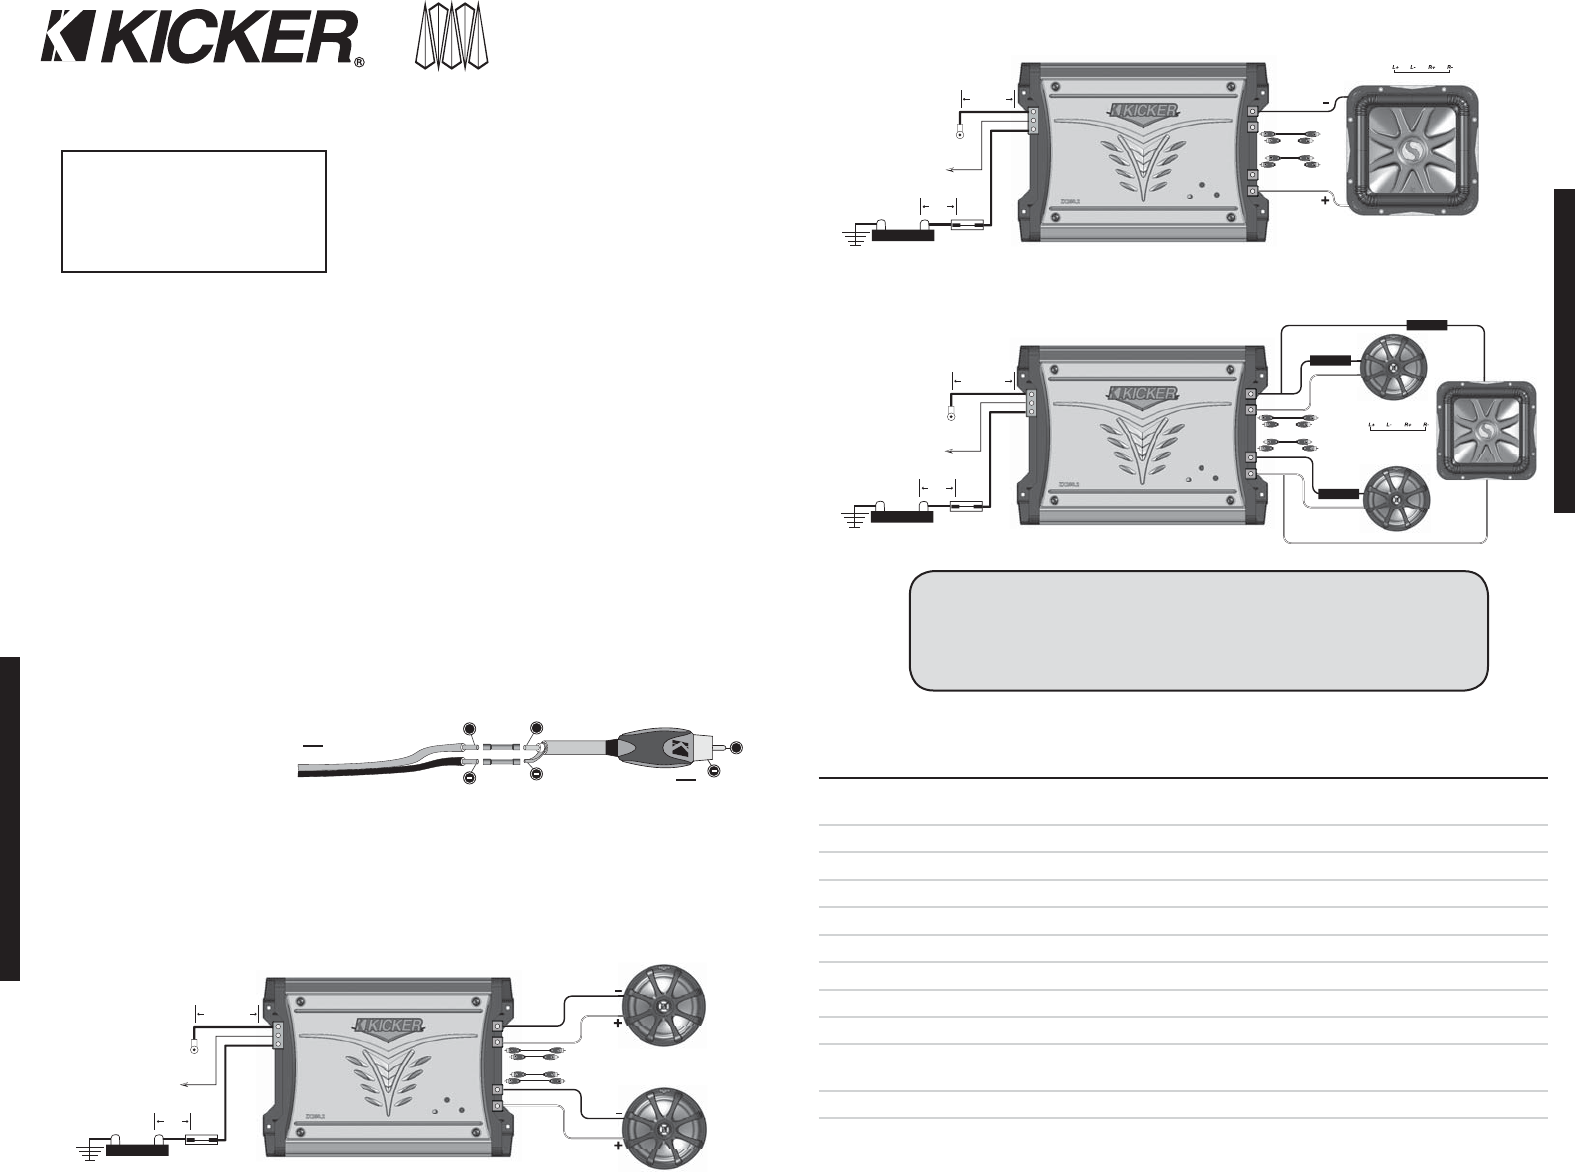 kicker amp wiring kit instructions solidfonts kicker amp wiring kit instructions solidfonts